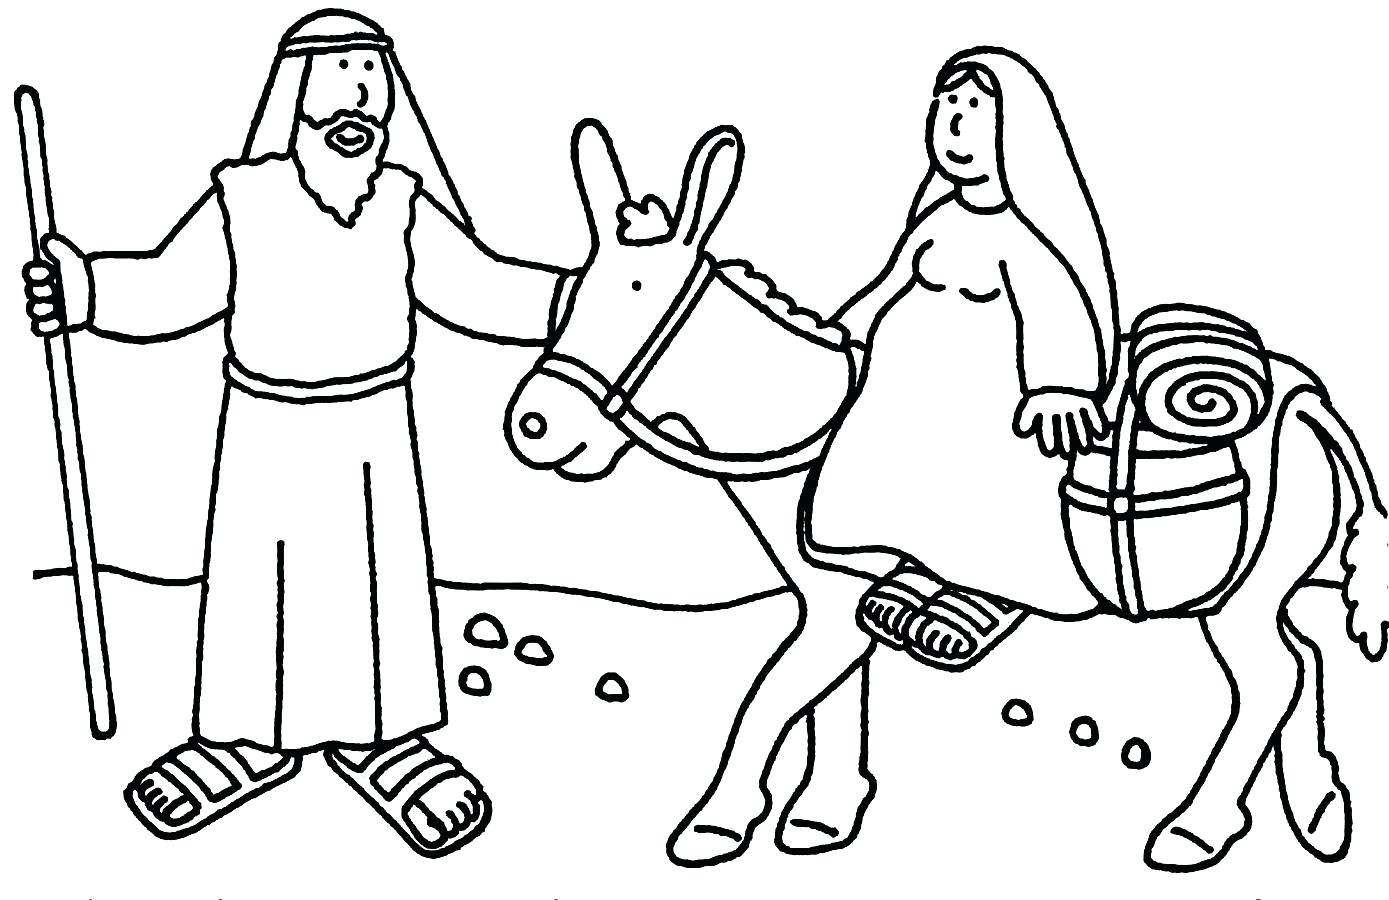 Religious Christmas Coloring Pages To Print With Collection Of For Christian Download Them